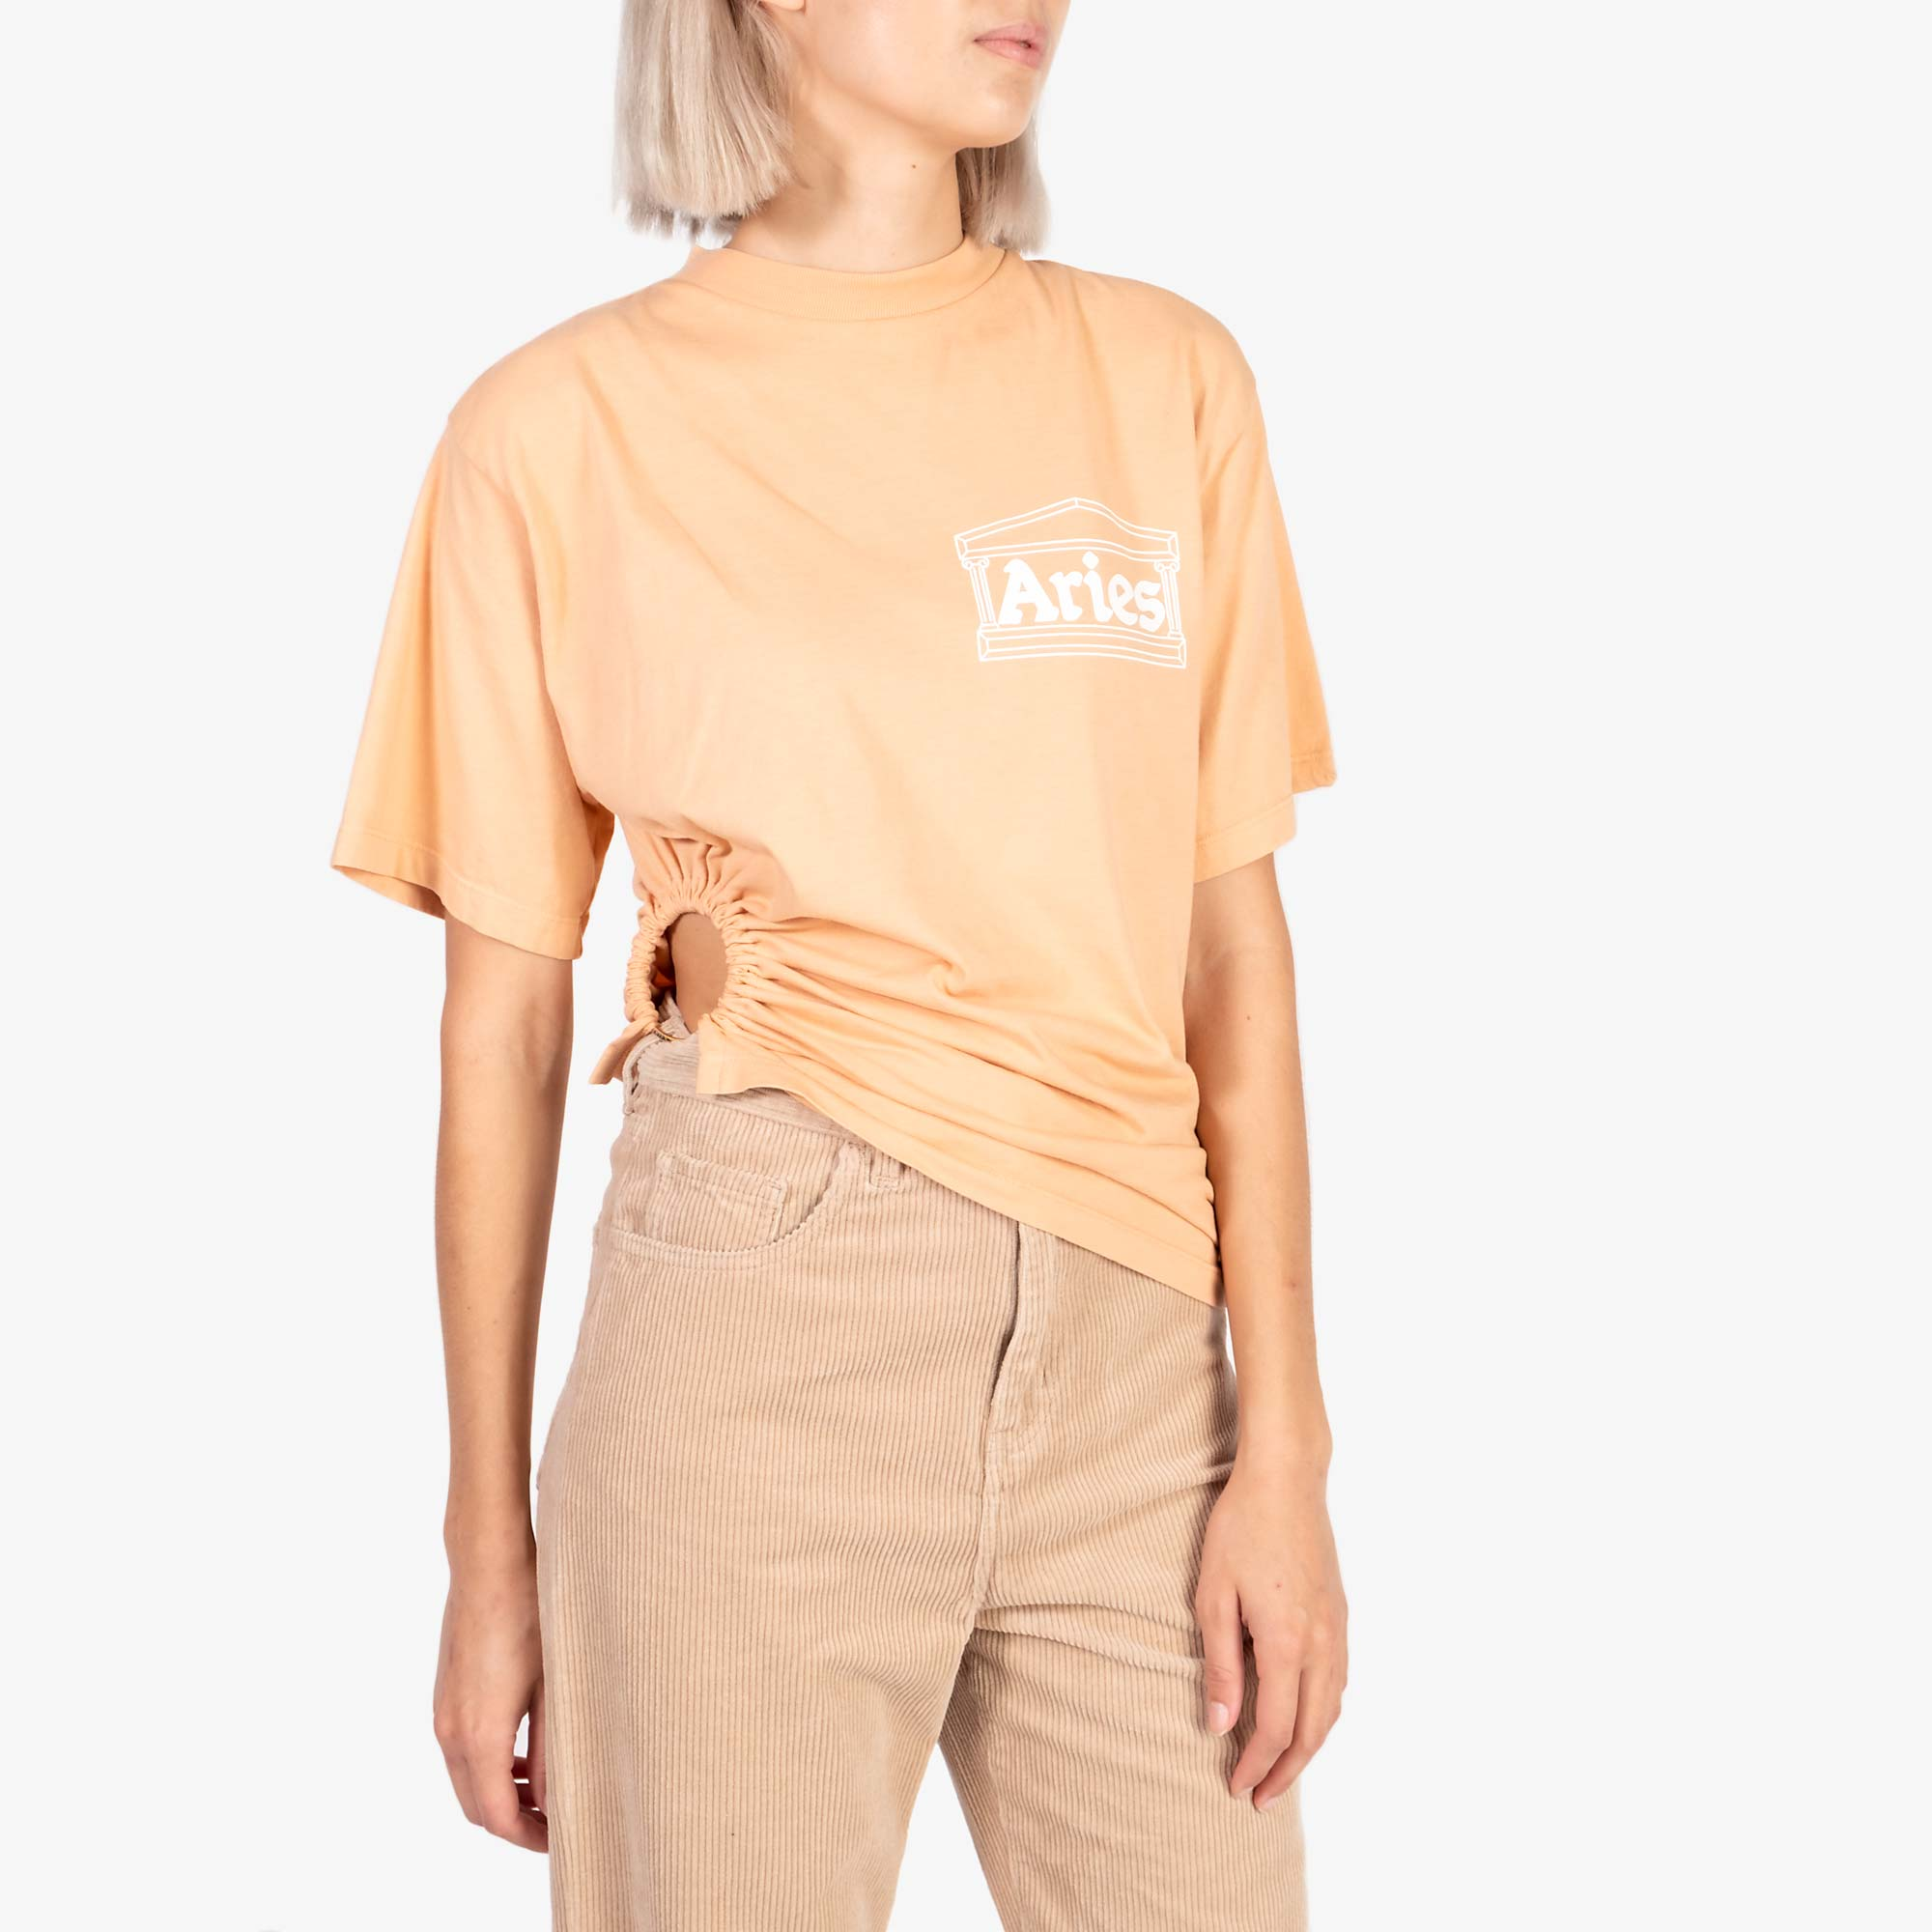 Aries Women's Ring Tee - Peach 1